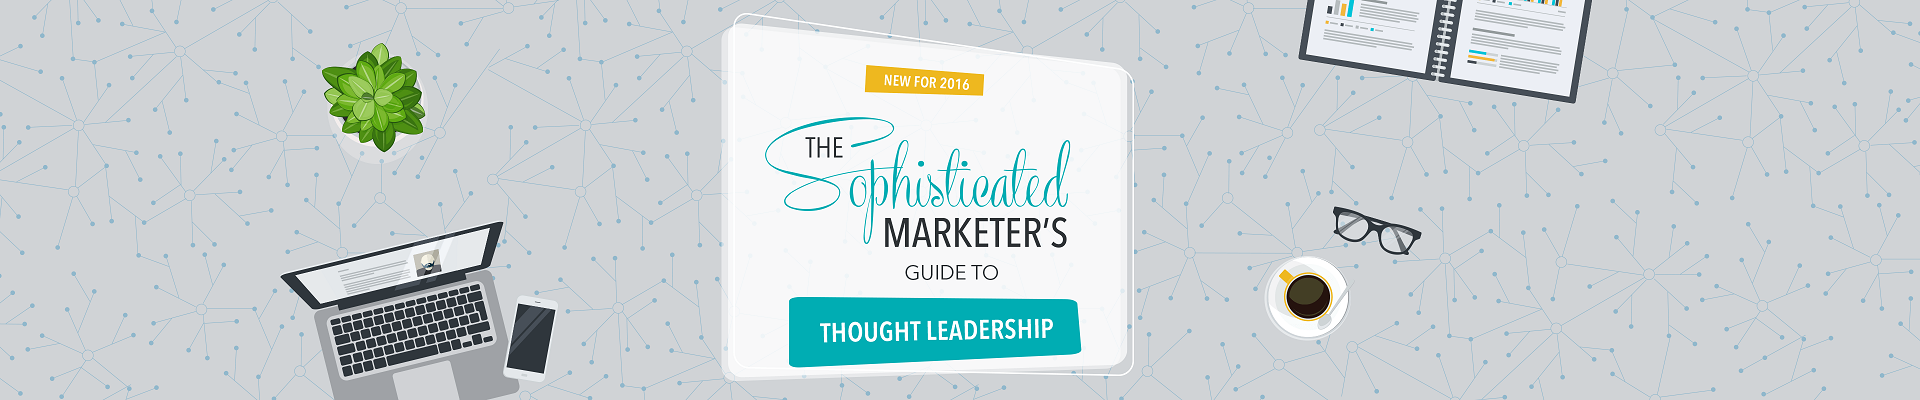 Sophisticated Marketer S Guide To Thought Leadership Linkedin Marketing Solutions